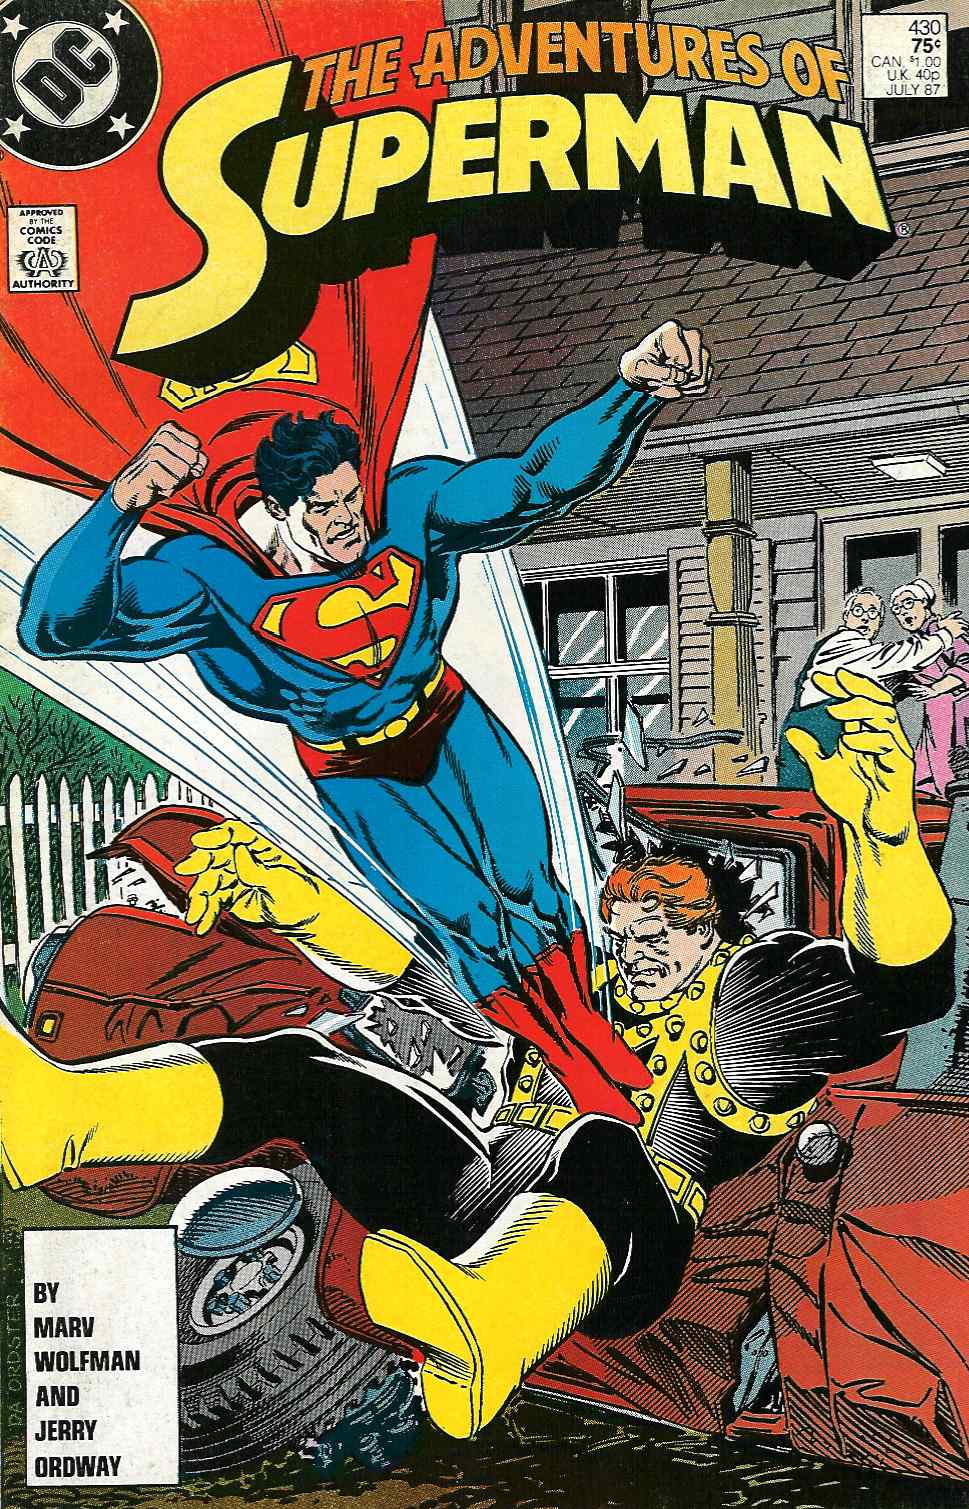 Adventures of Superman (1987) 430 Page 1